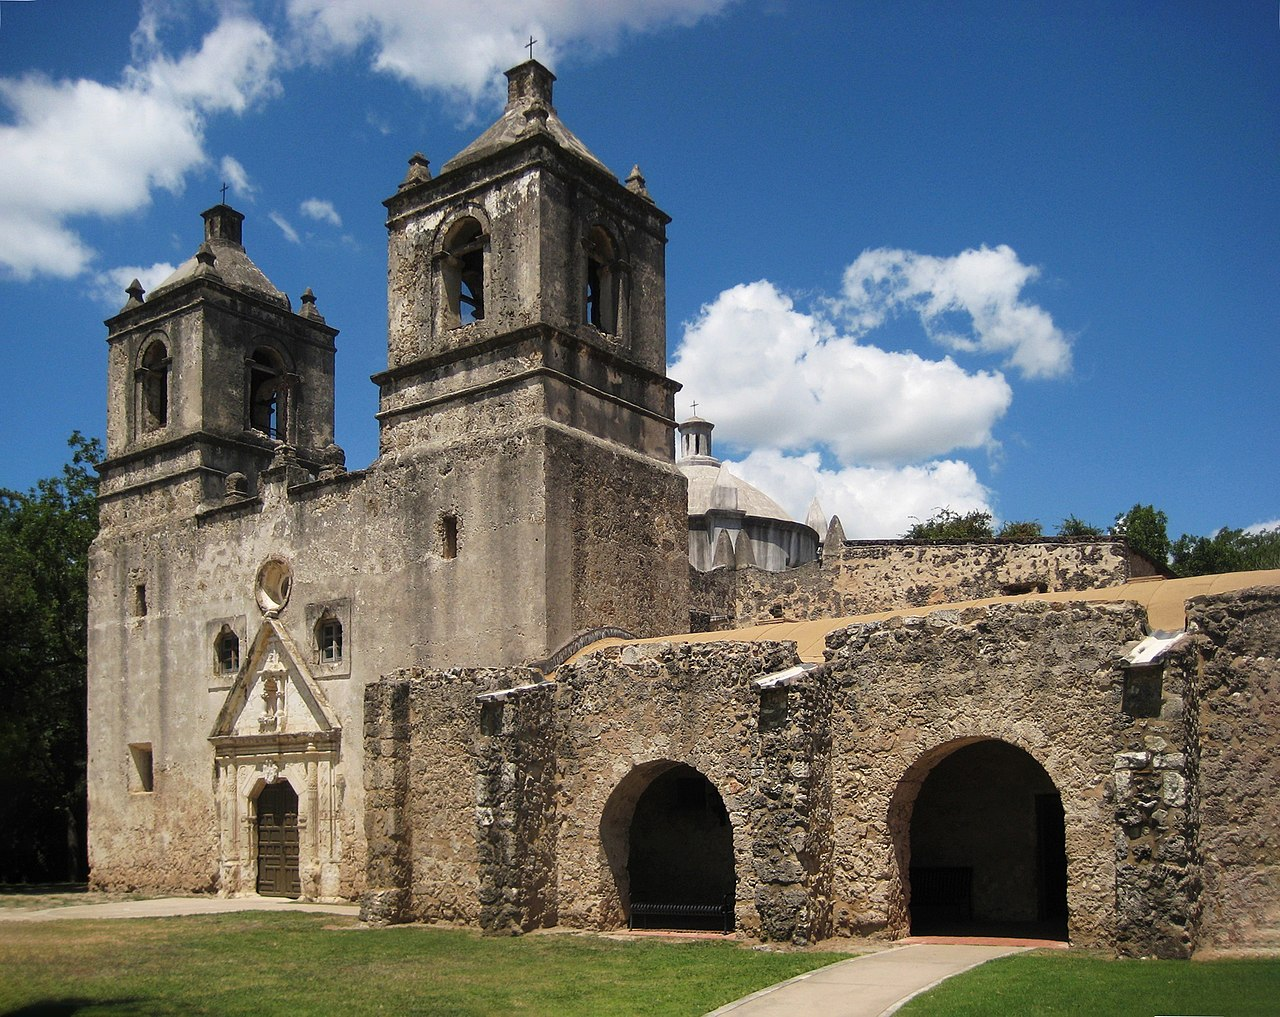 Outdoor Activities Options In San Antonio-San Antonio Missions National Historical Park